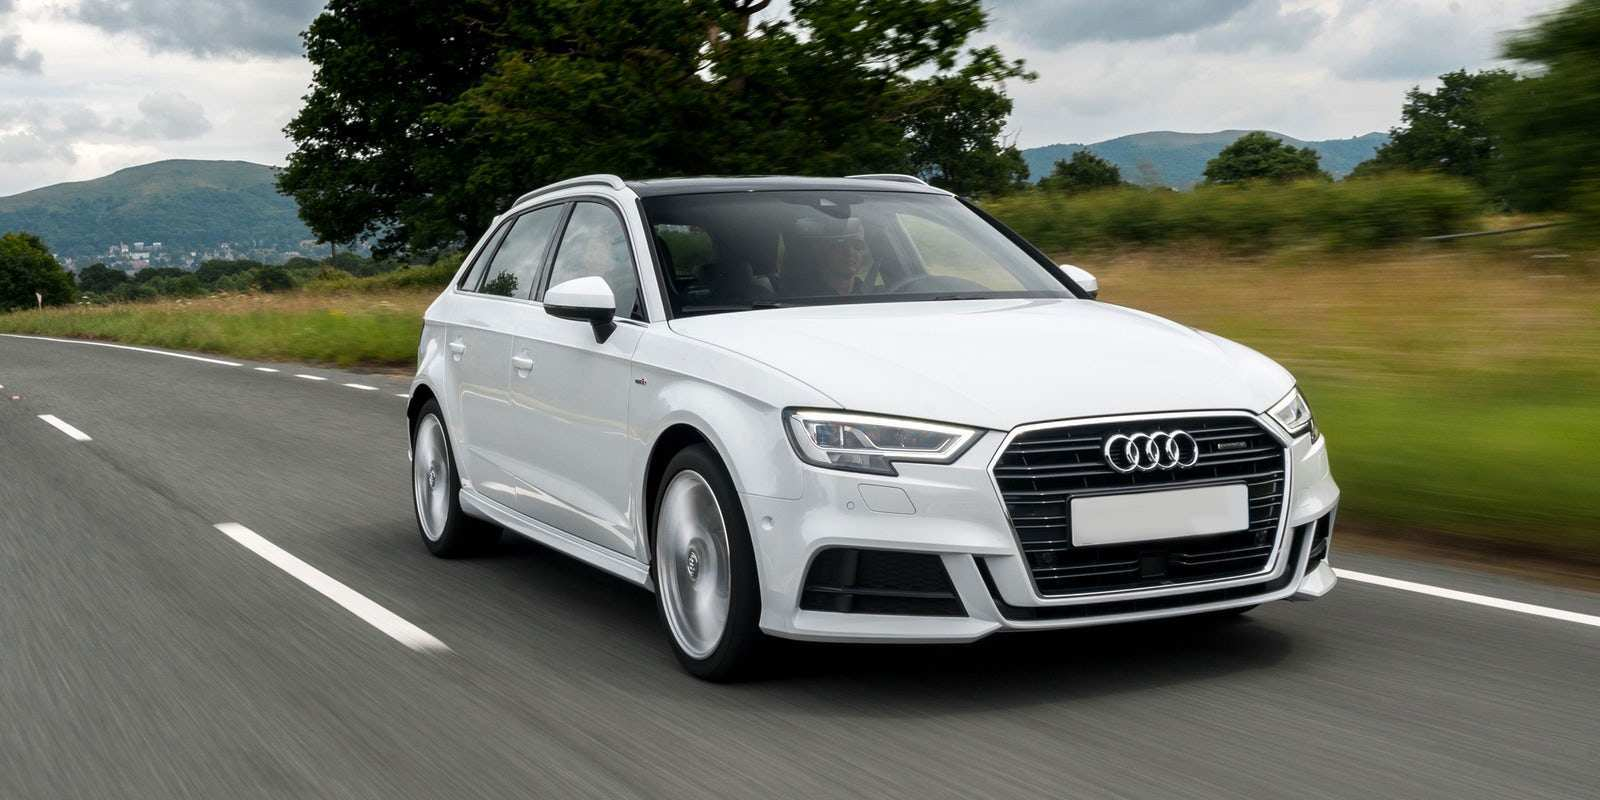 63 The Best 2020 Audi A3 Sportback Usa Concept